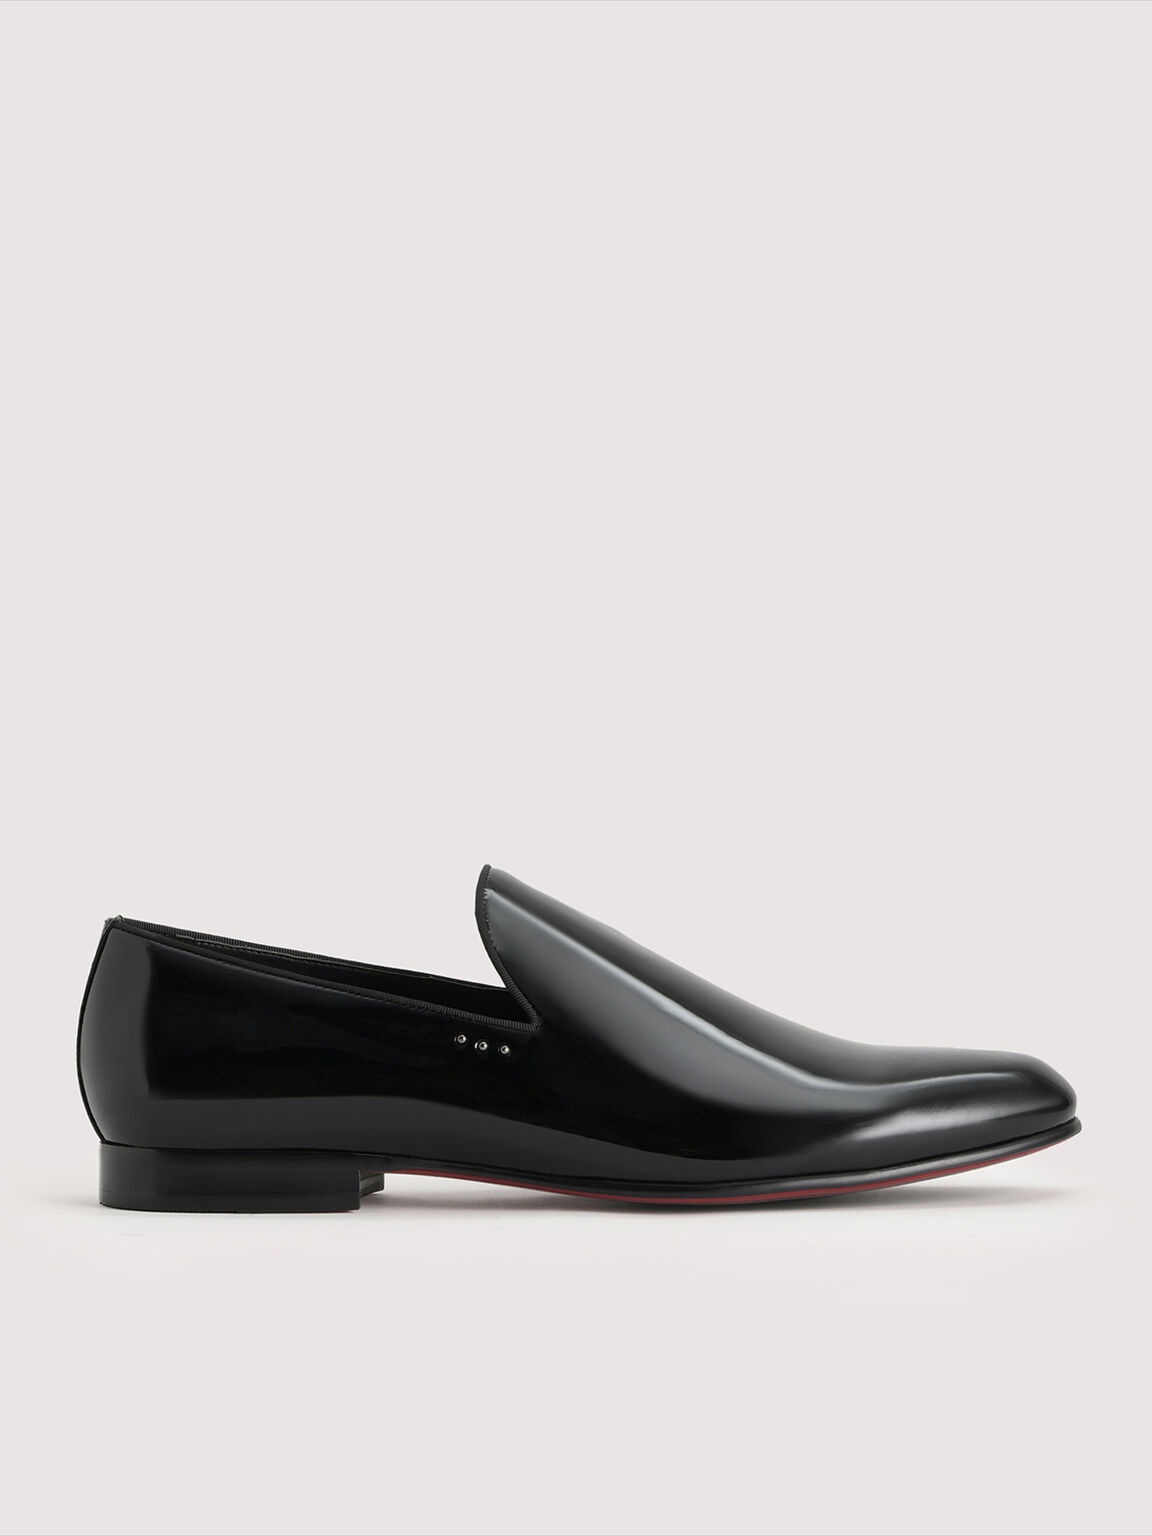 Patent Leather Loafers, Black, hi-res